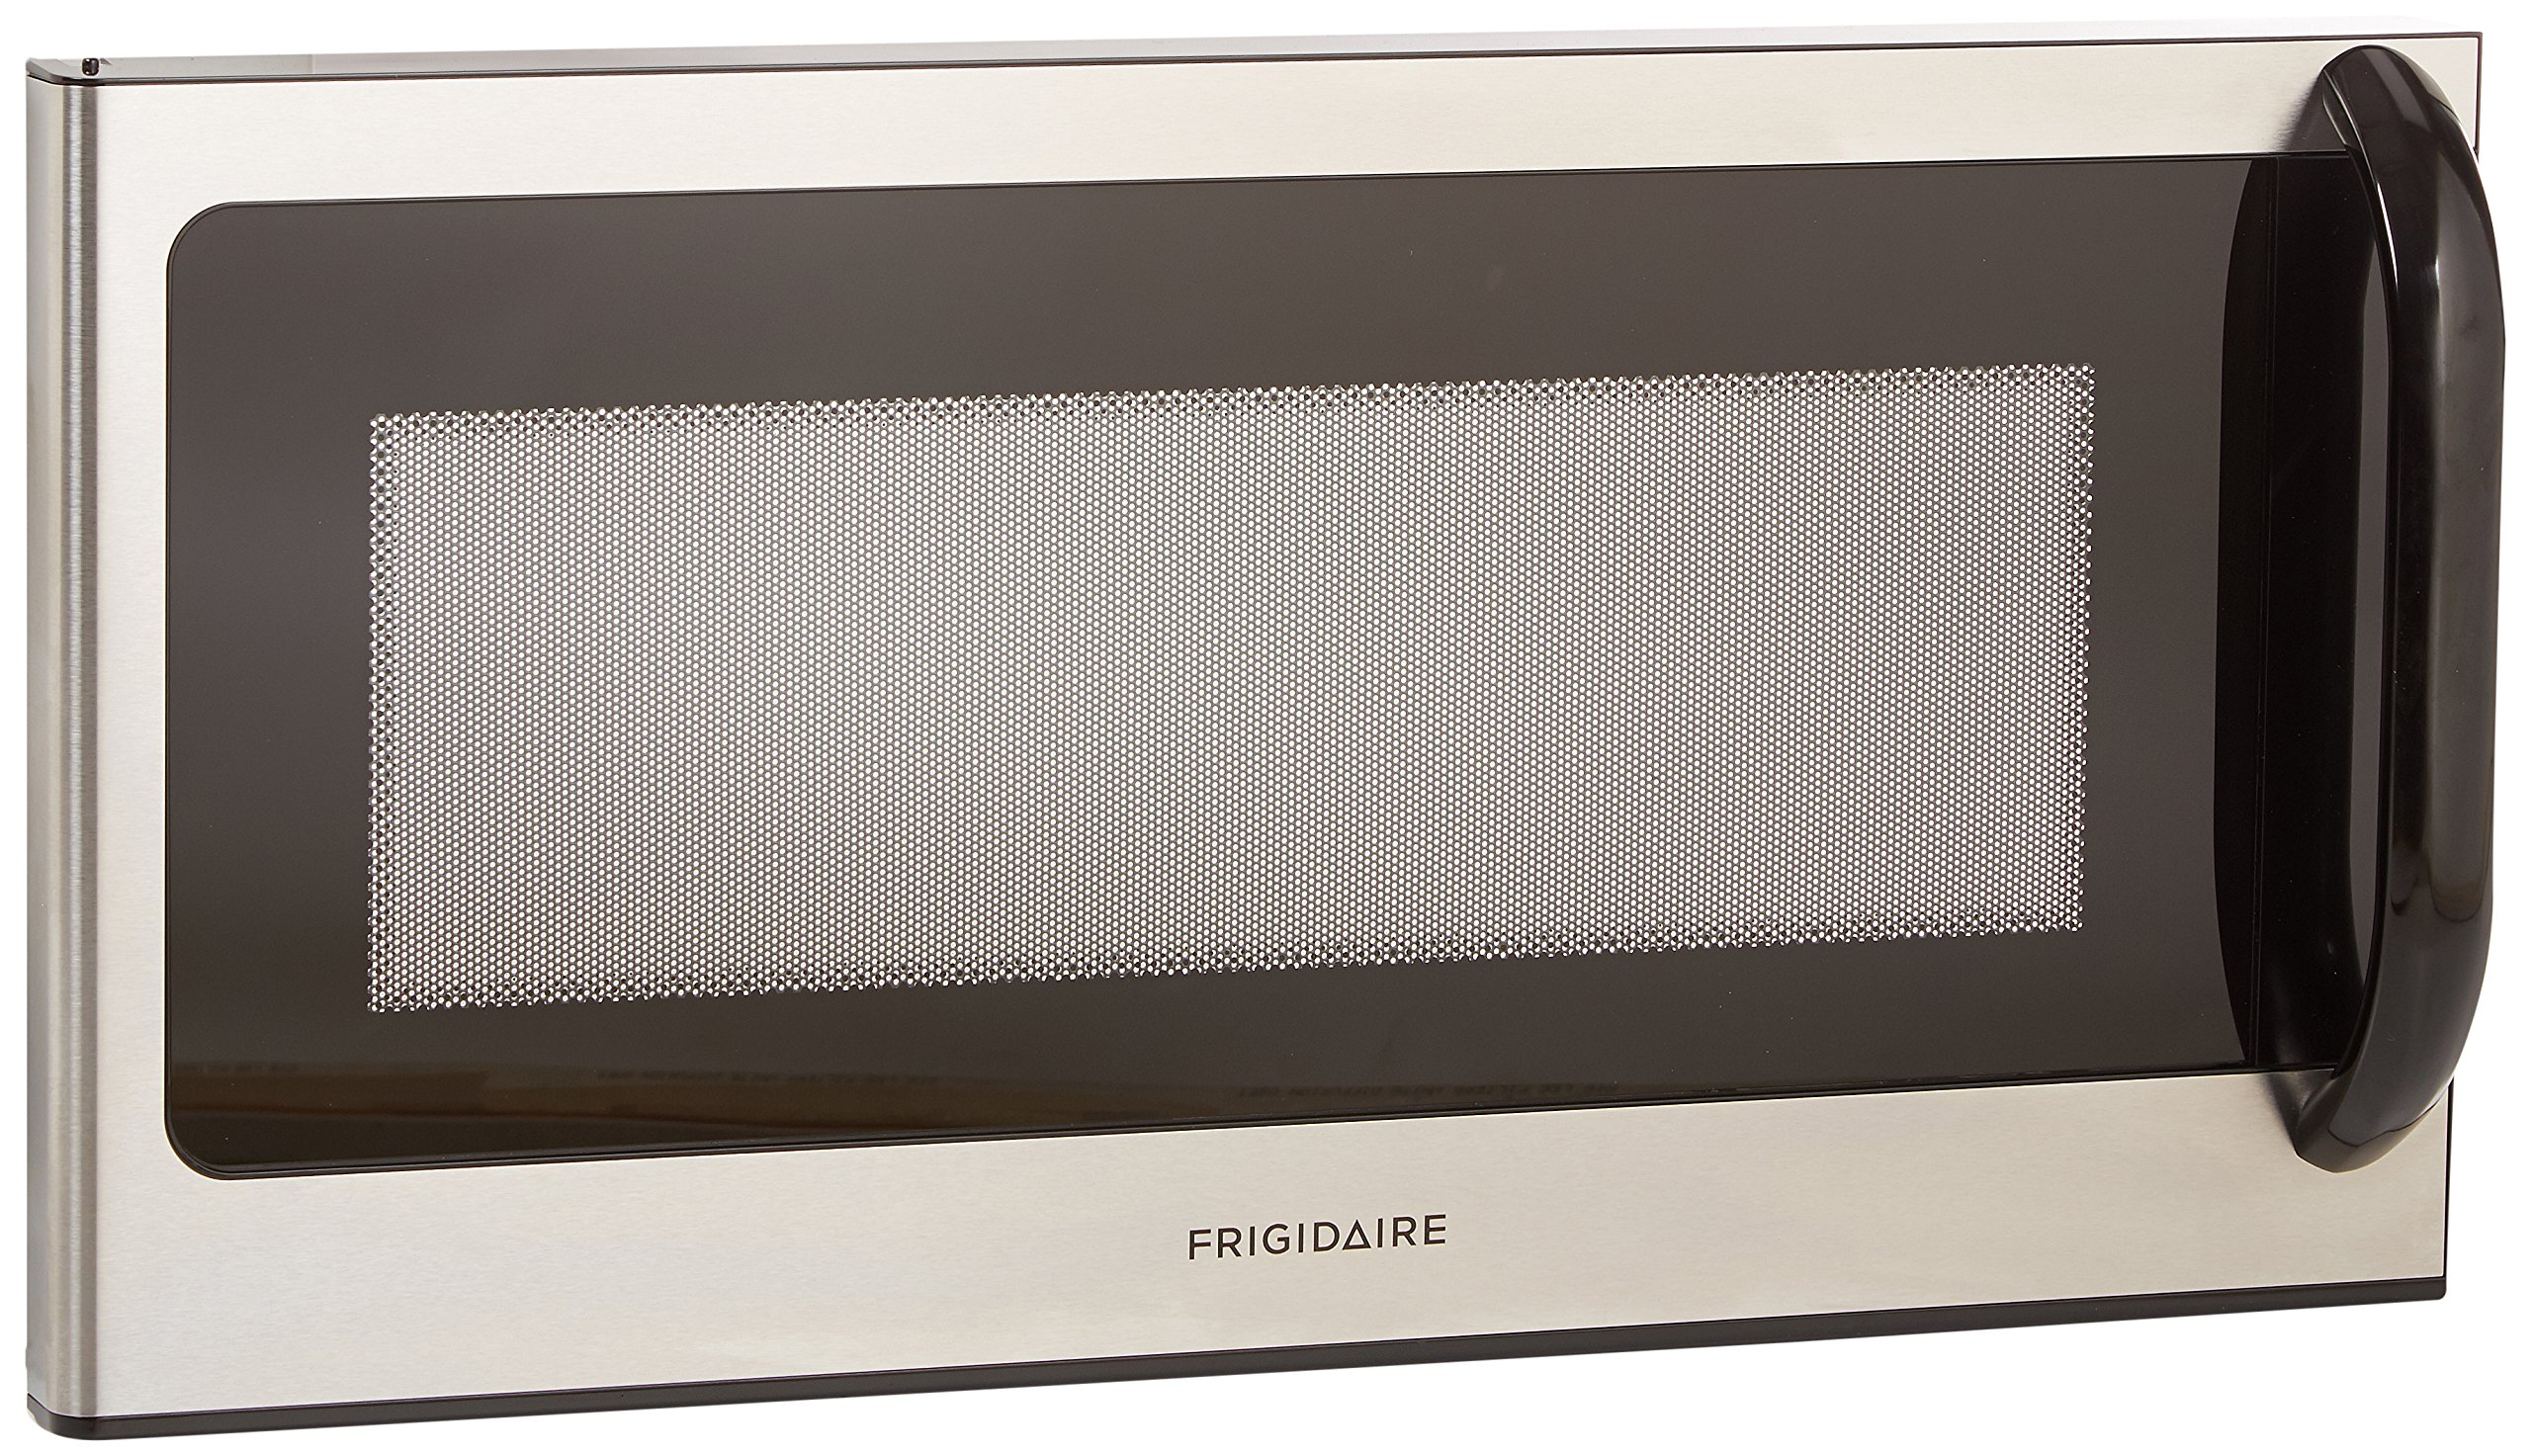 Frigidaire 5304477387 Door Assembly for Microwave